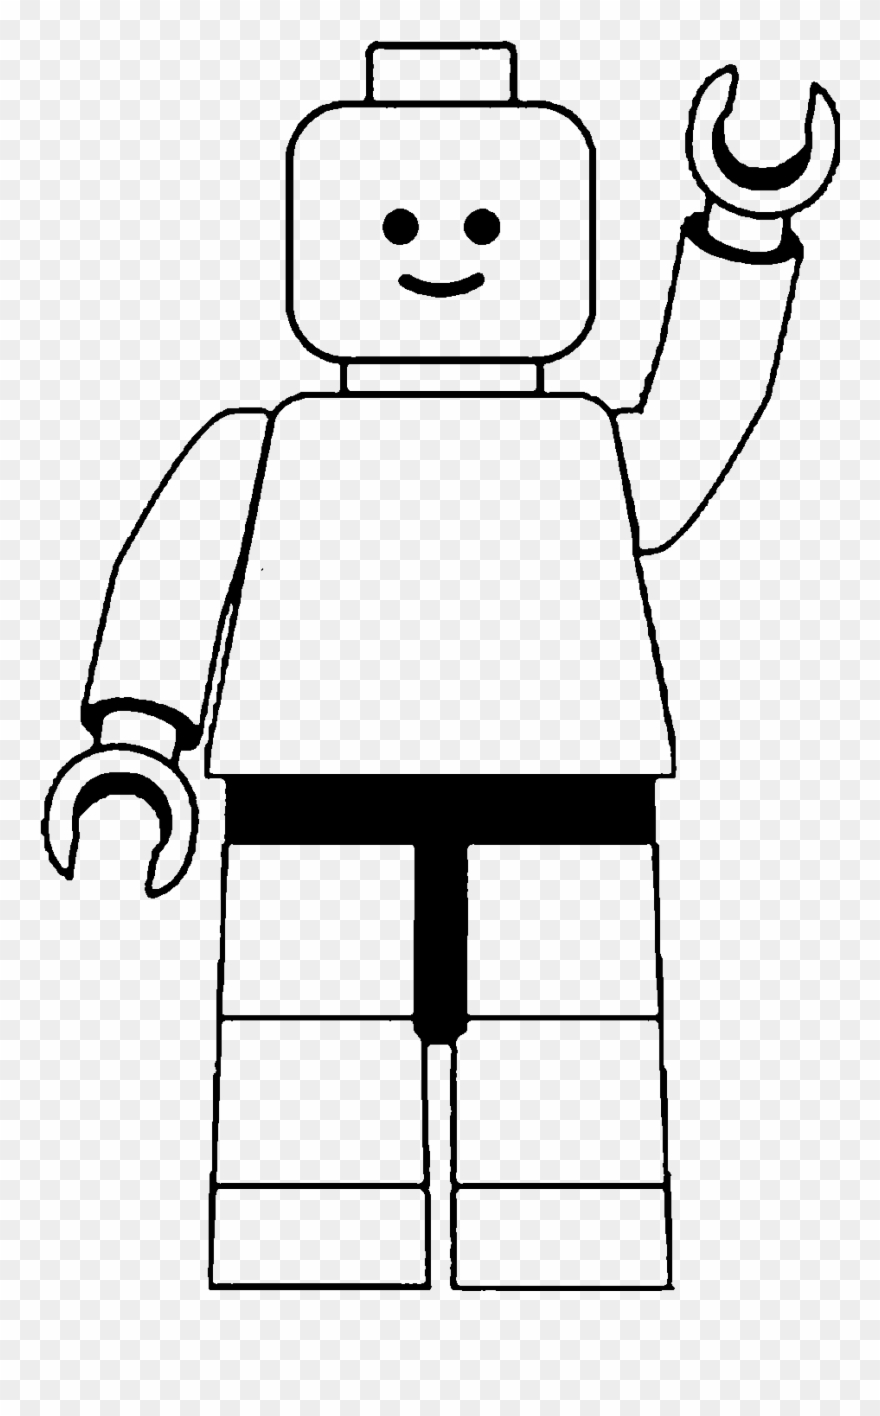 Legos clipart black and white clip art library stock Lego Man Clip Art Black And White - Lego Clipart Black And White ... clip art library stock